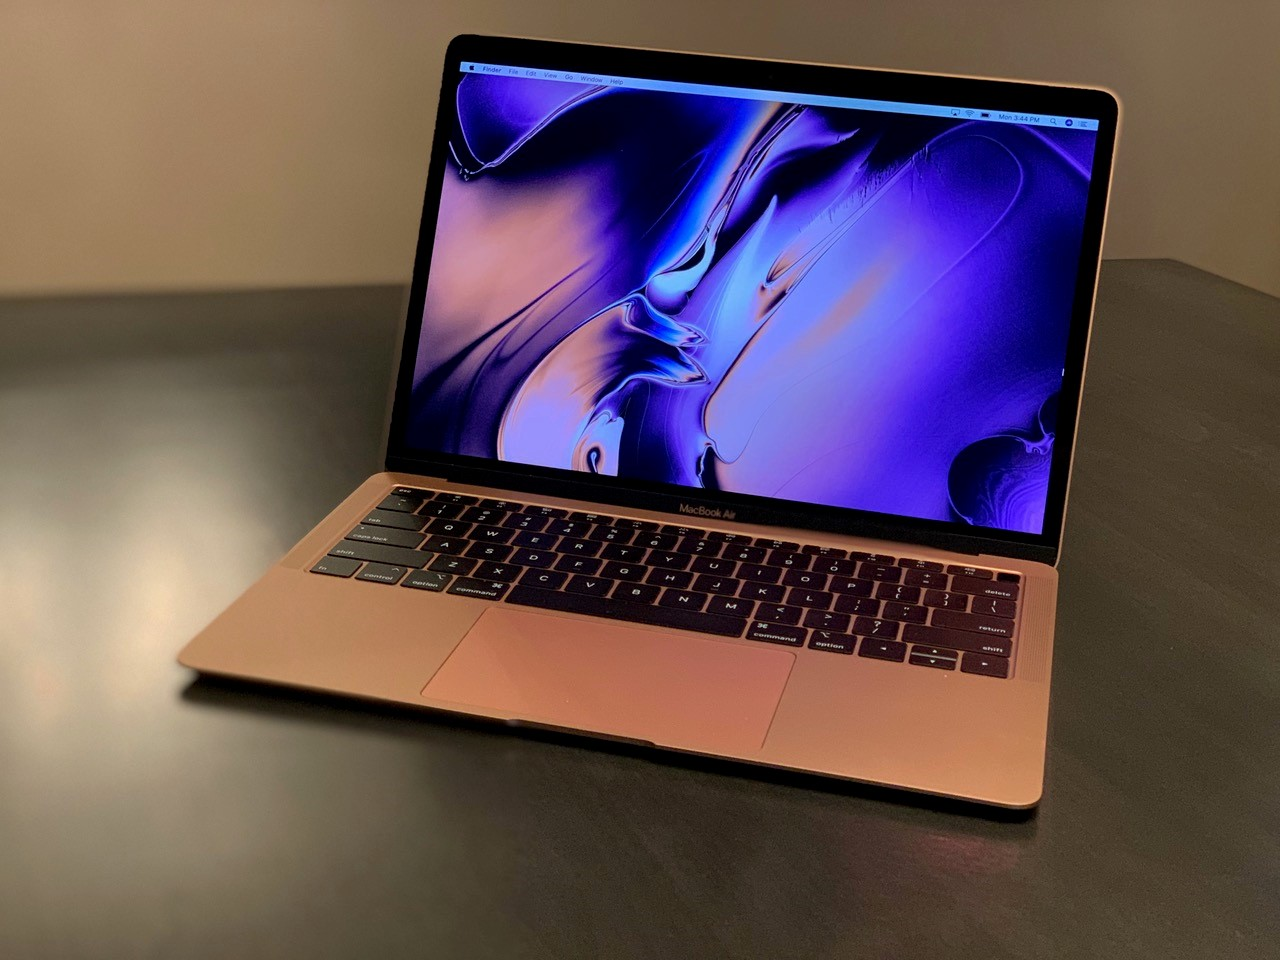 Apple Breathes New Life into the MacBook Air: 5 Reasons Why ... on ship map, buenos aires city map, climate map, food supply map, the earth map, international ocean map, after effects map, aia map, water map, pressure map, fire map, code geass map, travel by map, ocean shipping map, beyond earth map, world trade agreements map, global attack map, solar access map, one piece map, earth minerals map,